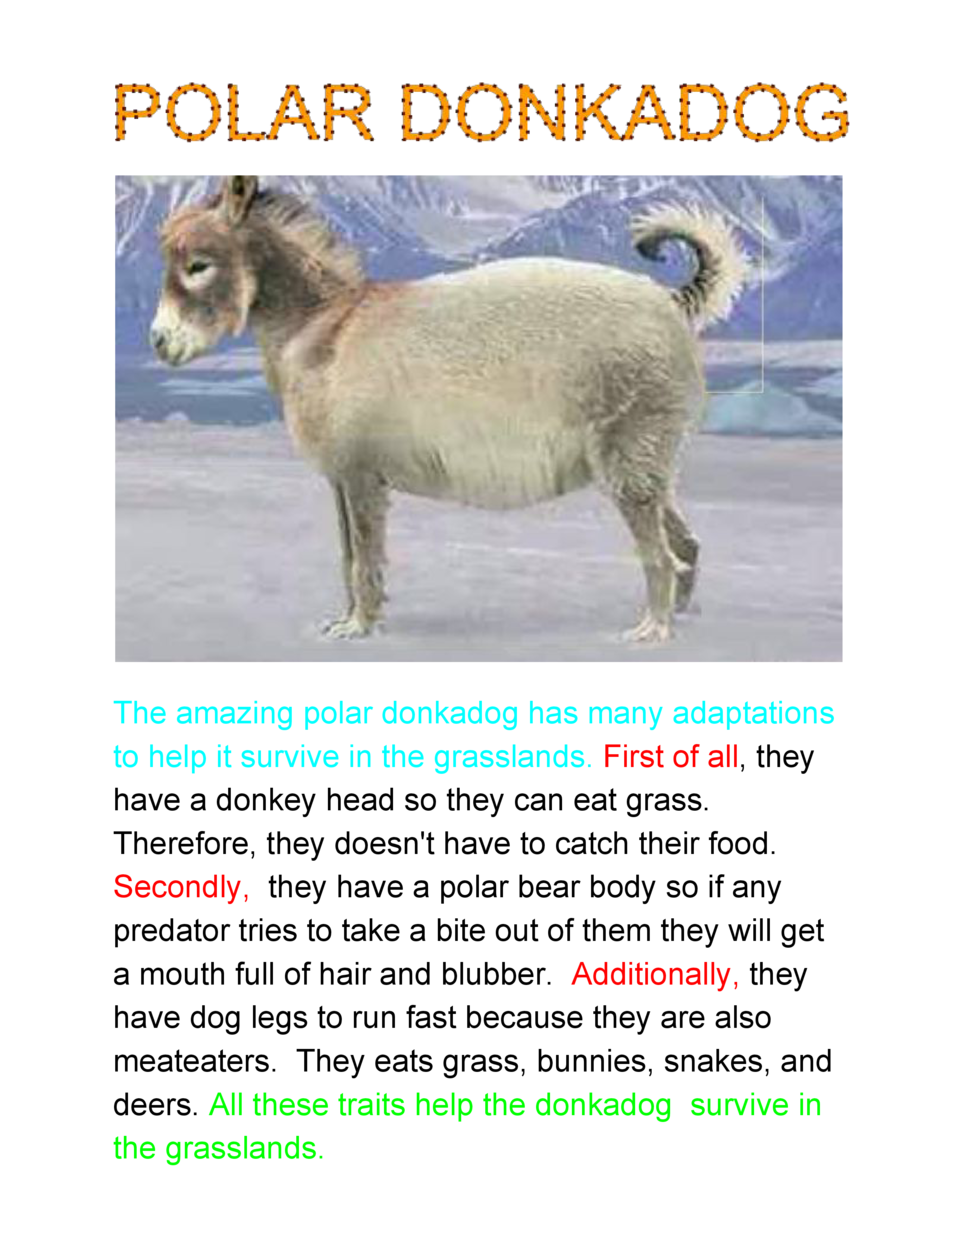 The  amazing  polar  donkadog  has  many  adaptations   to  help  it  survive  in  the  grasslands.   ...